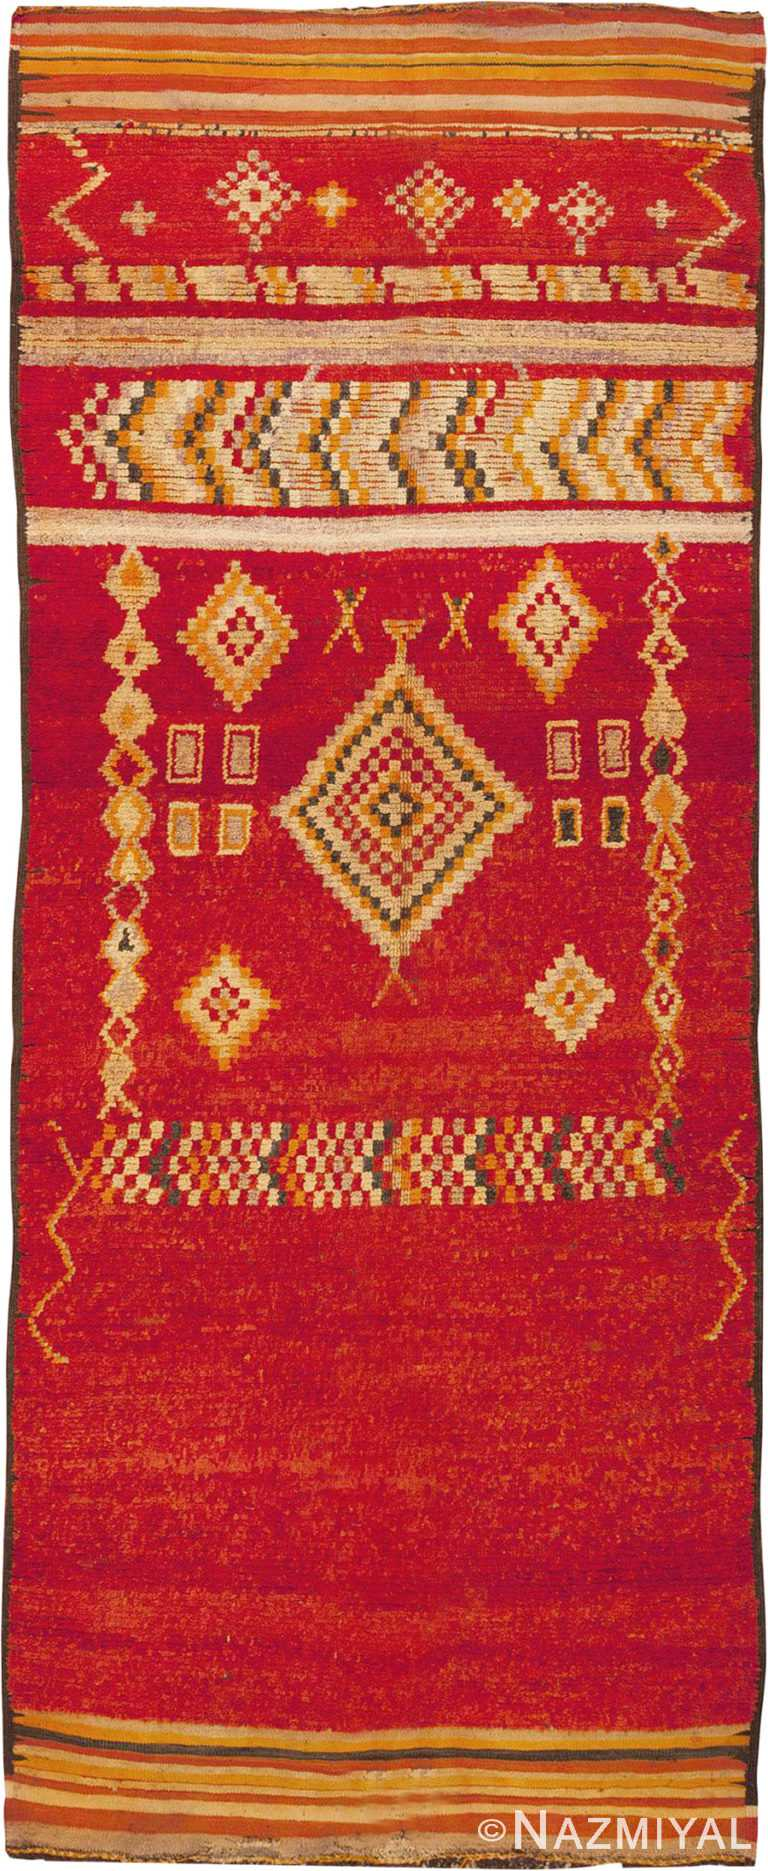 Vintage Red Long And Narrow Moroccan Rug #45686 by Nazmiyal Antique Rugs